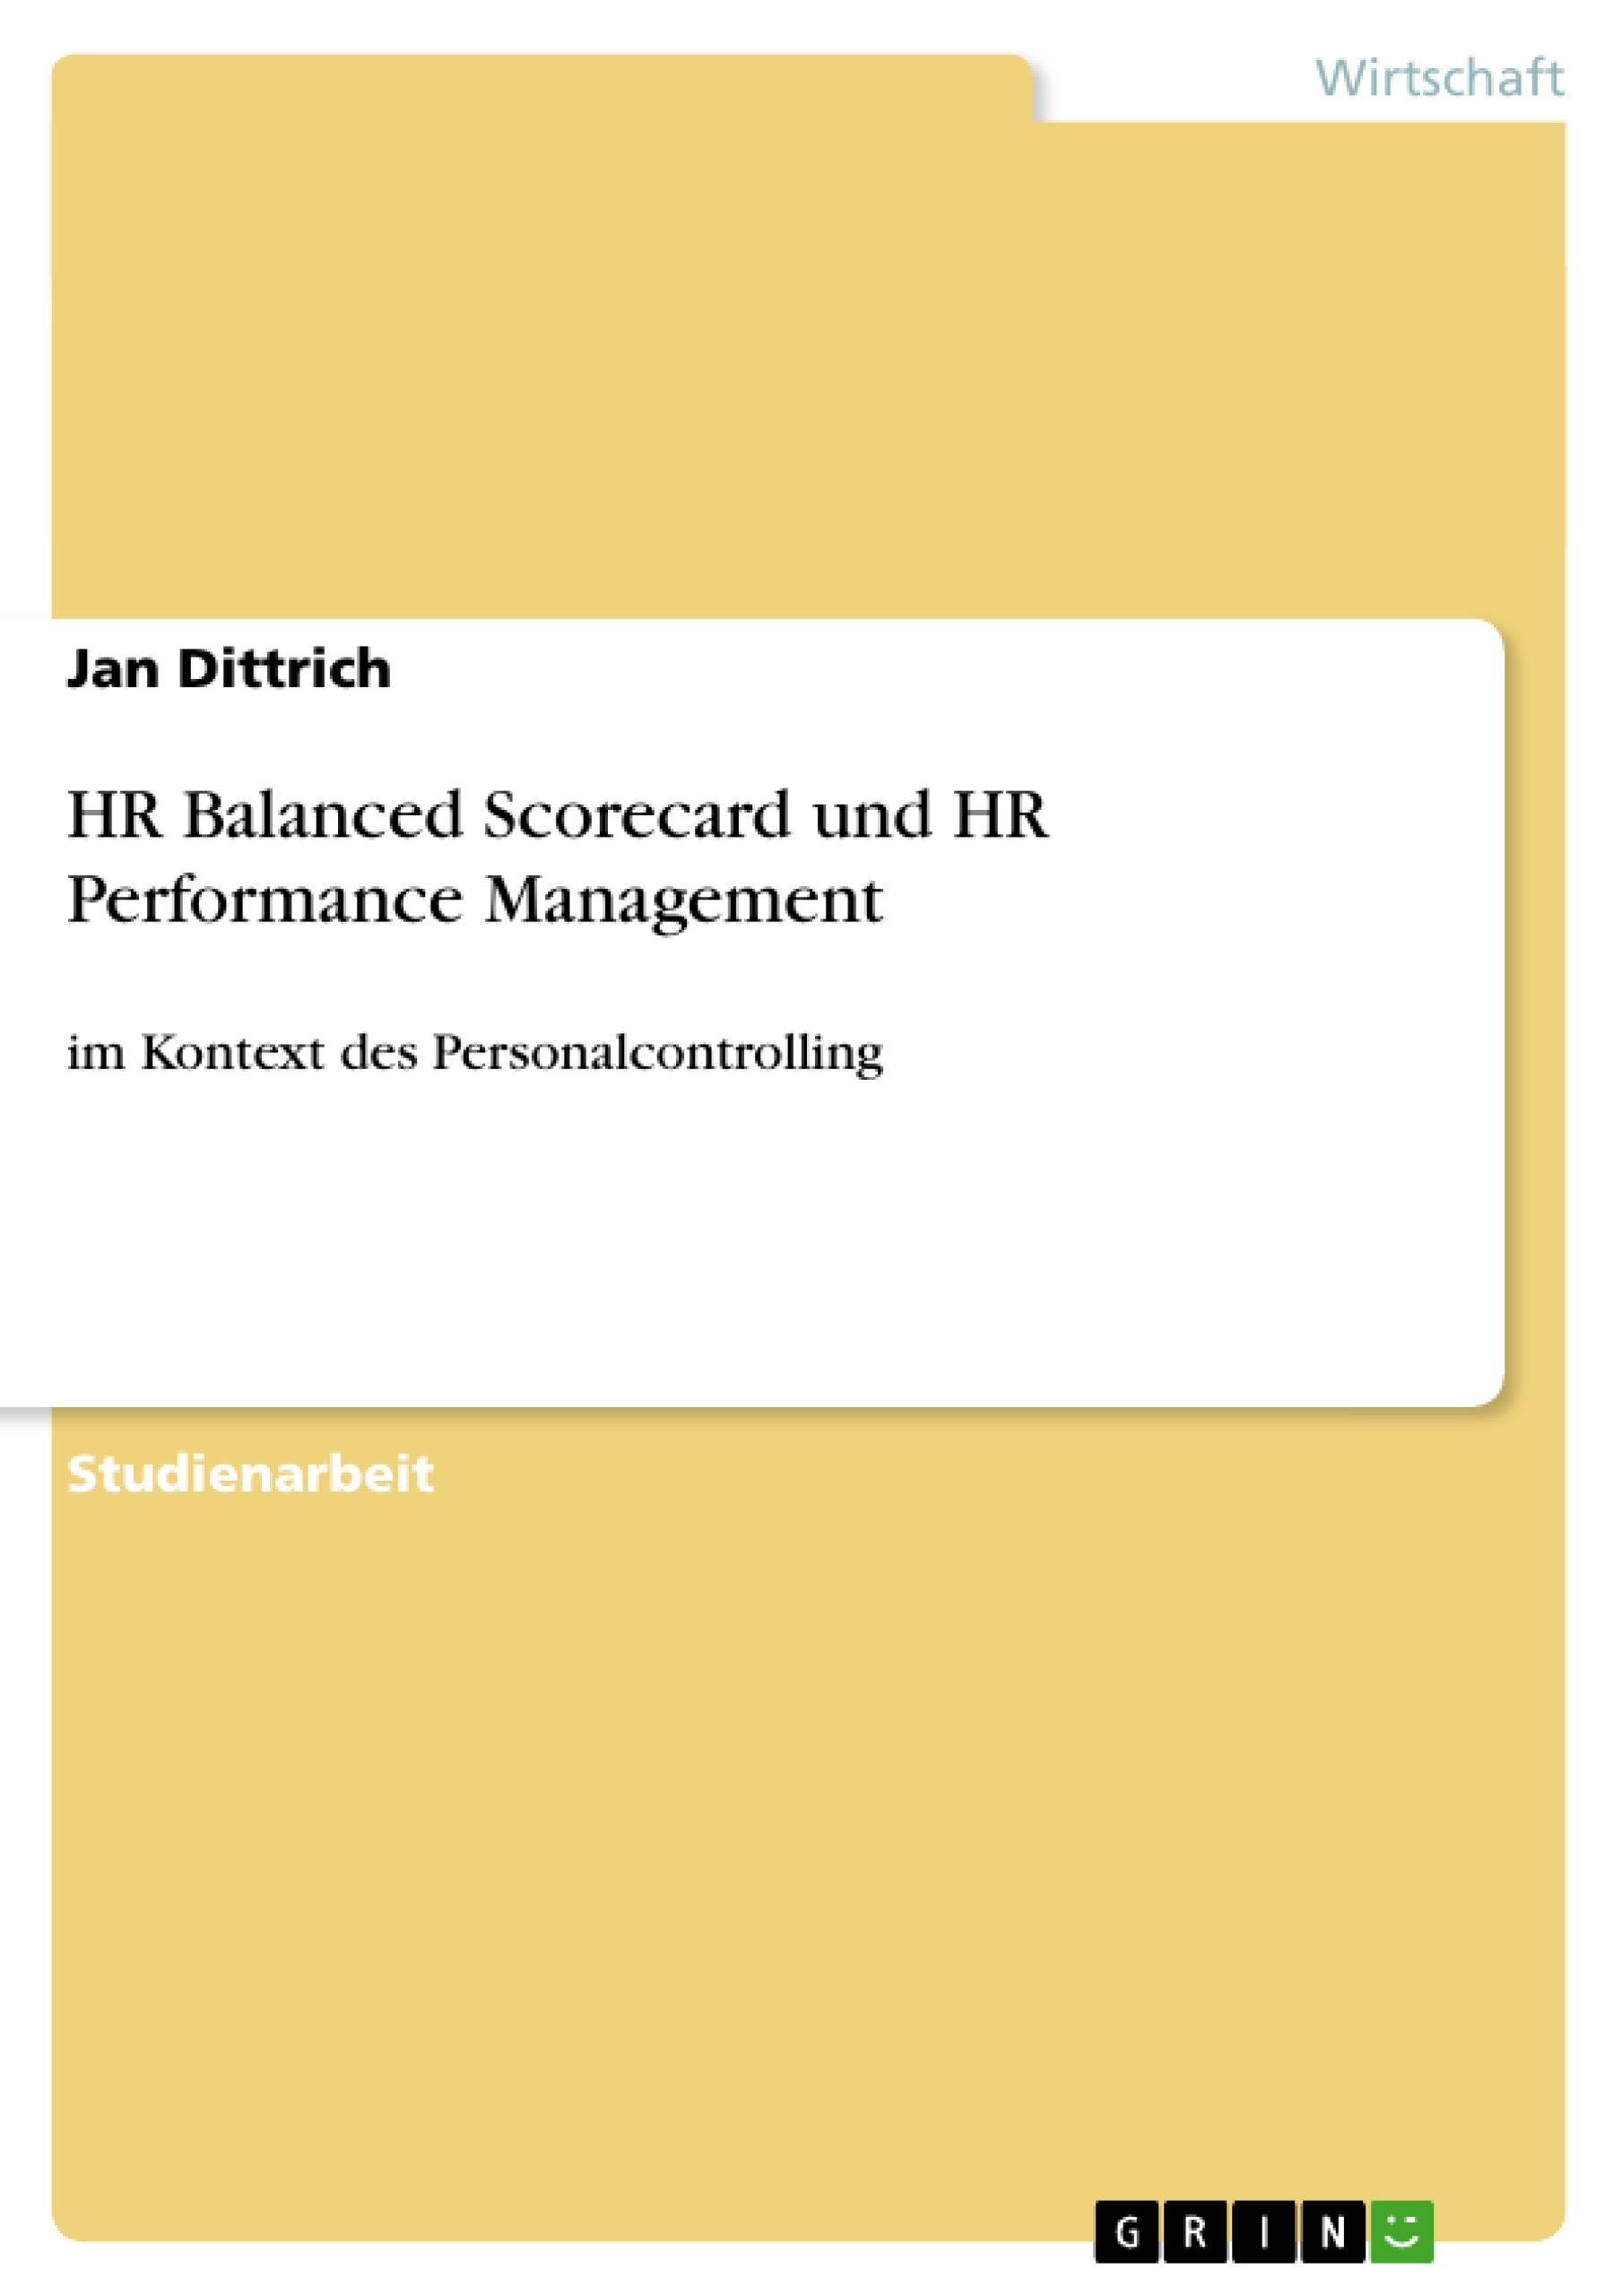 Titel: HR Balanced Scorecard und HR Performance Management